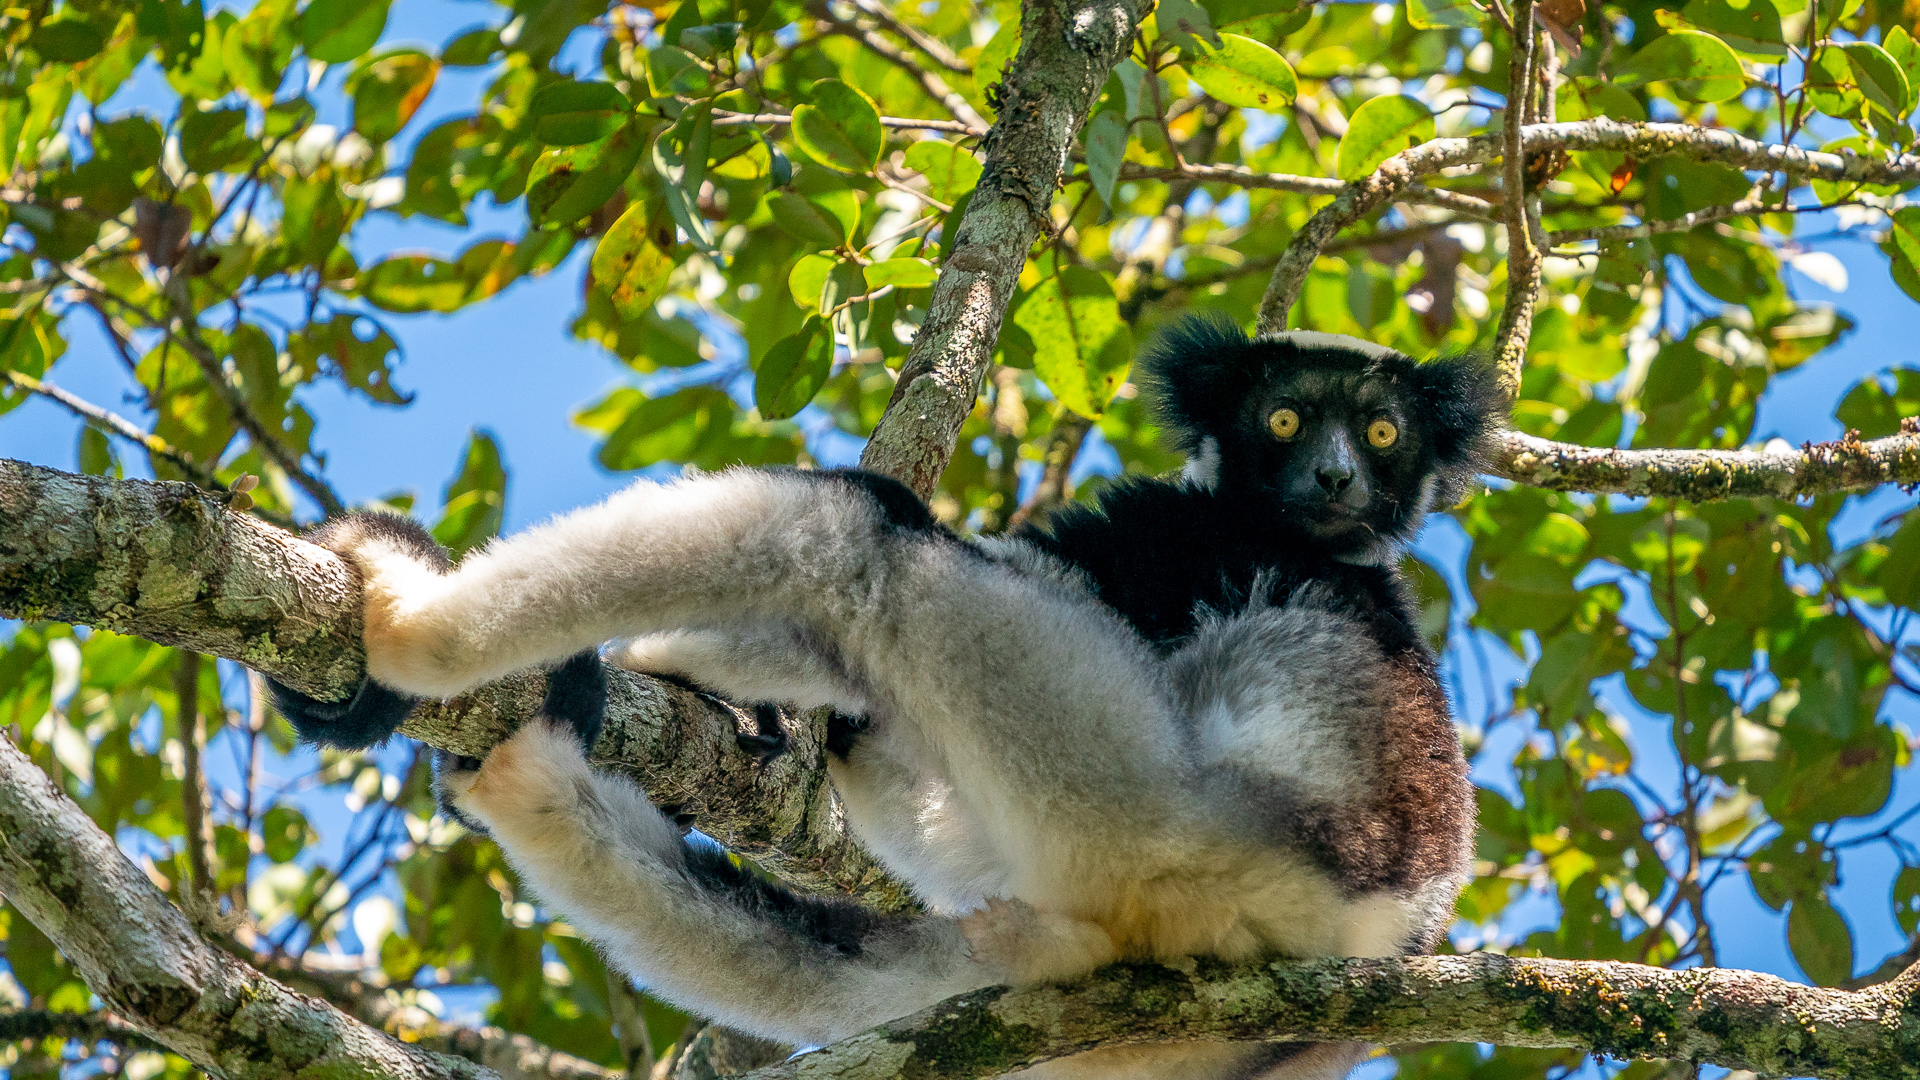 Madagascar header indri lemur in tree